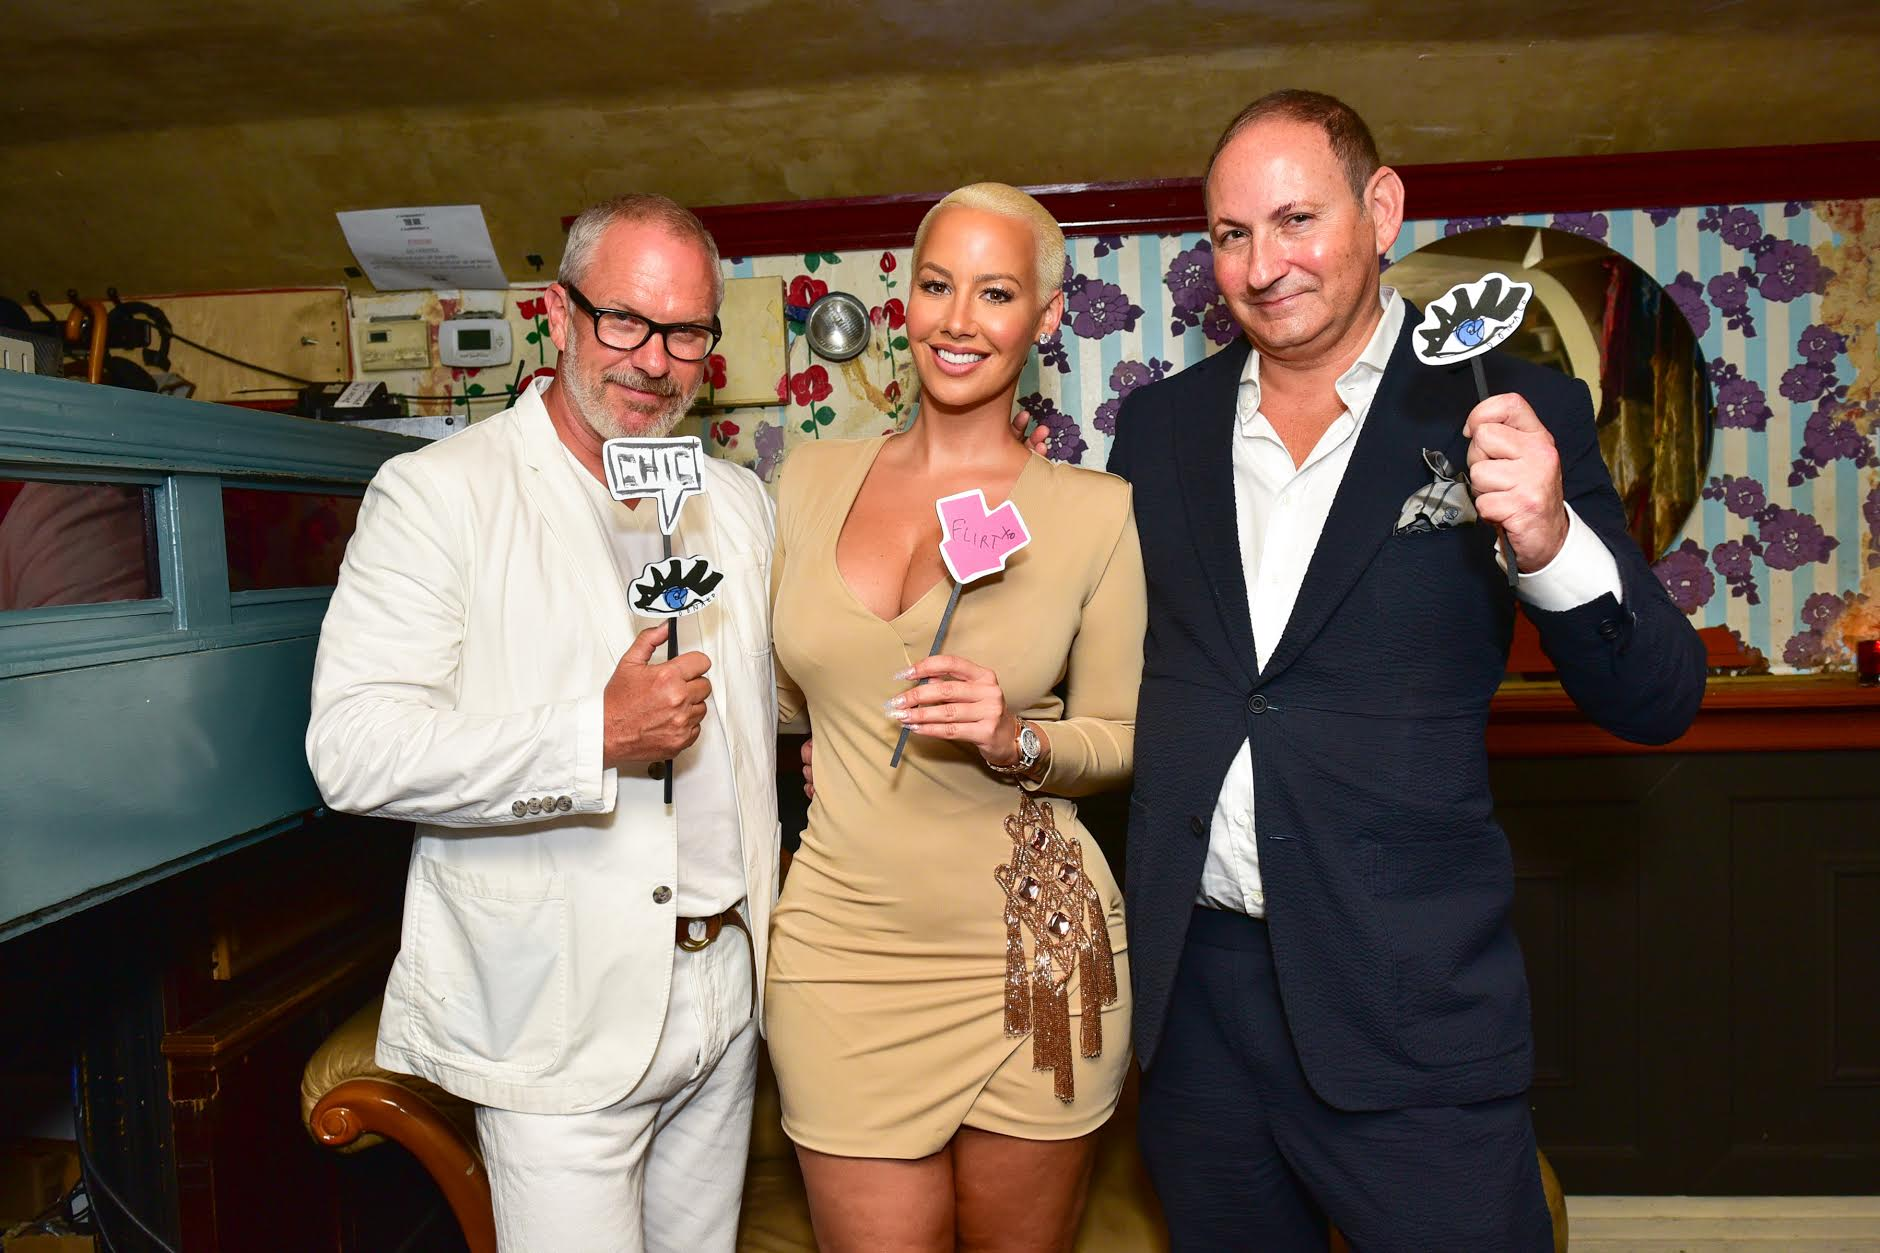 Donald Robertson, Amber Rose, John Demsey==Donald Robertson & John Demsey Celebrate the Launch of Flirt Cosmetics with Amber Rose==The Box, NY==August 15, 2016==©Patrick McMullan==Photo - Sean Zanni/PMC====